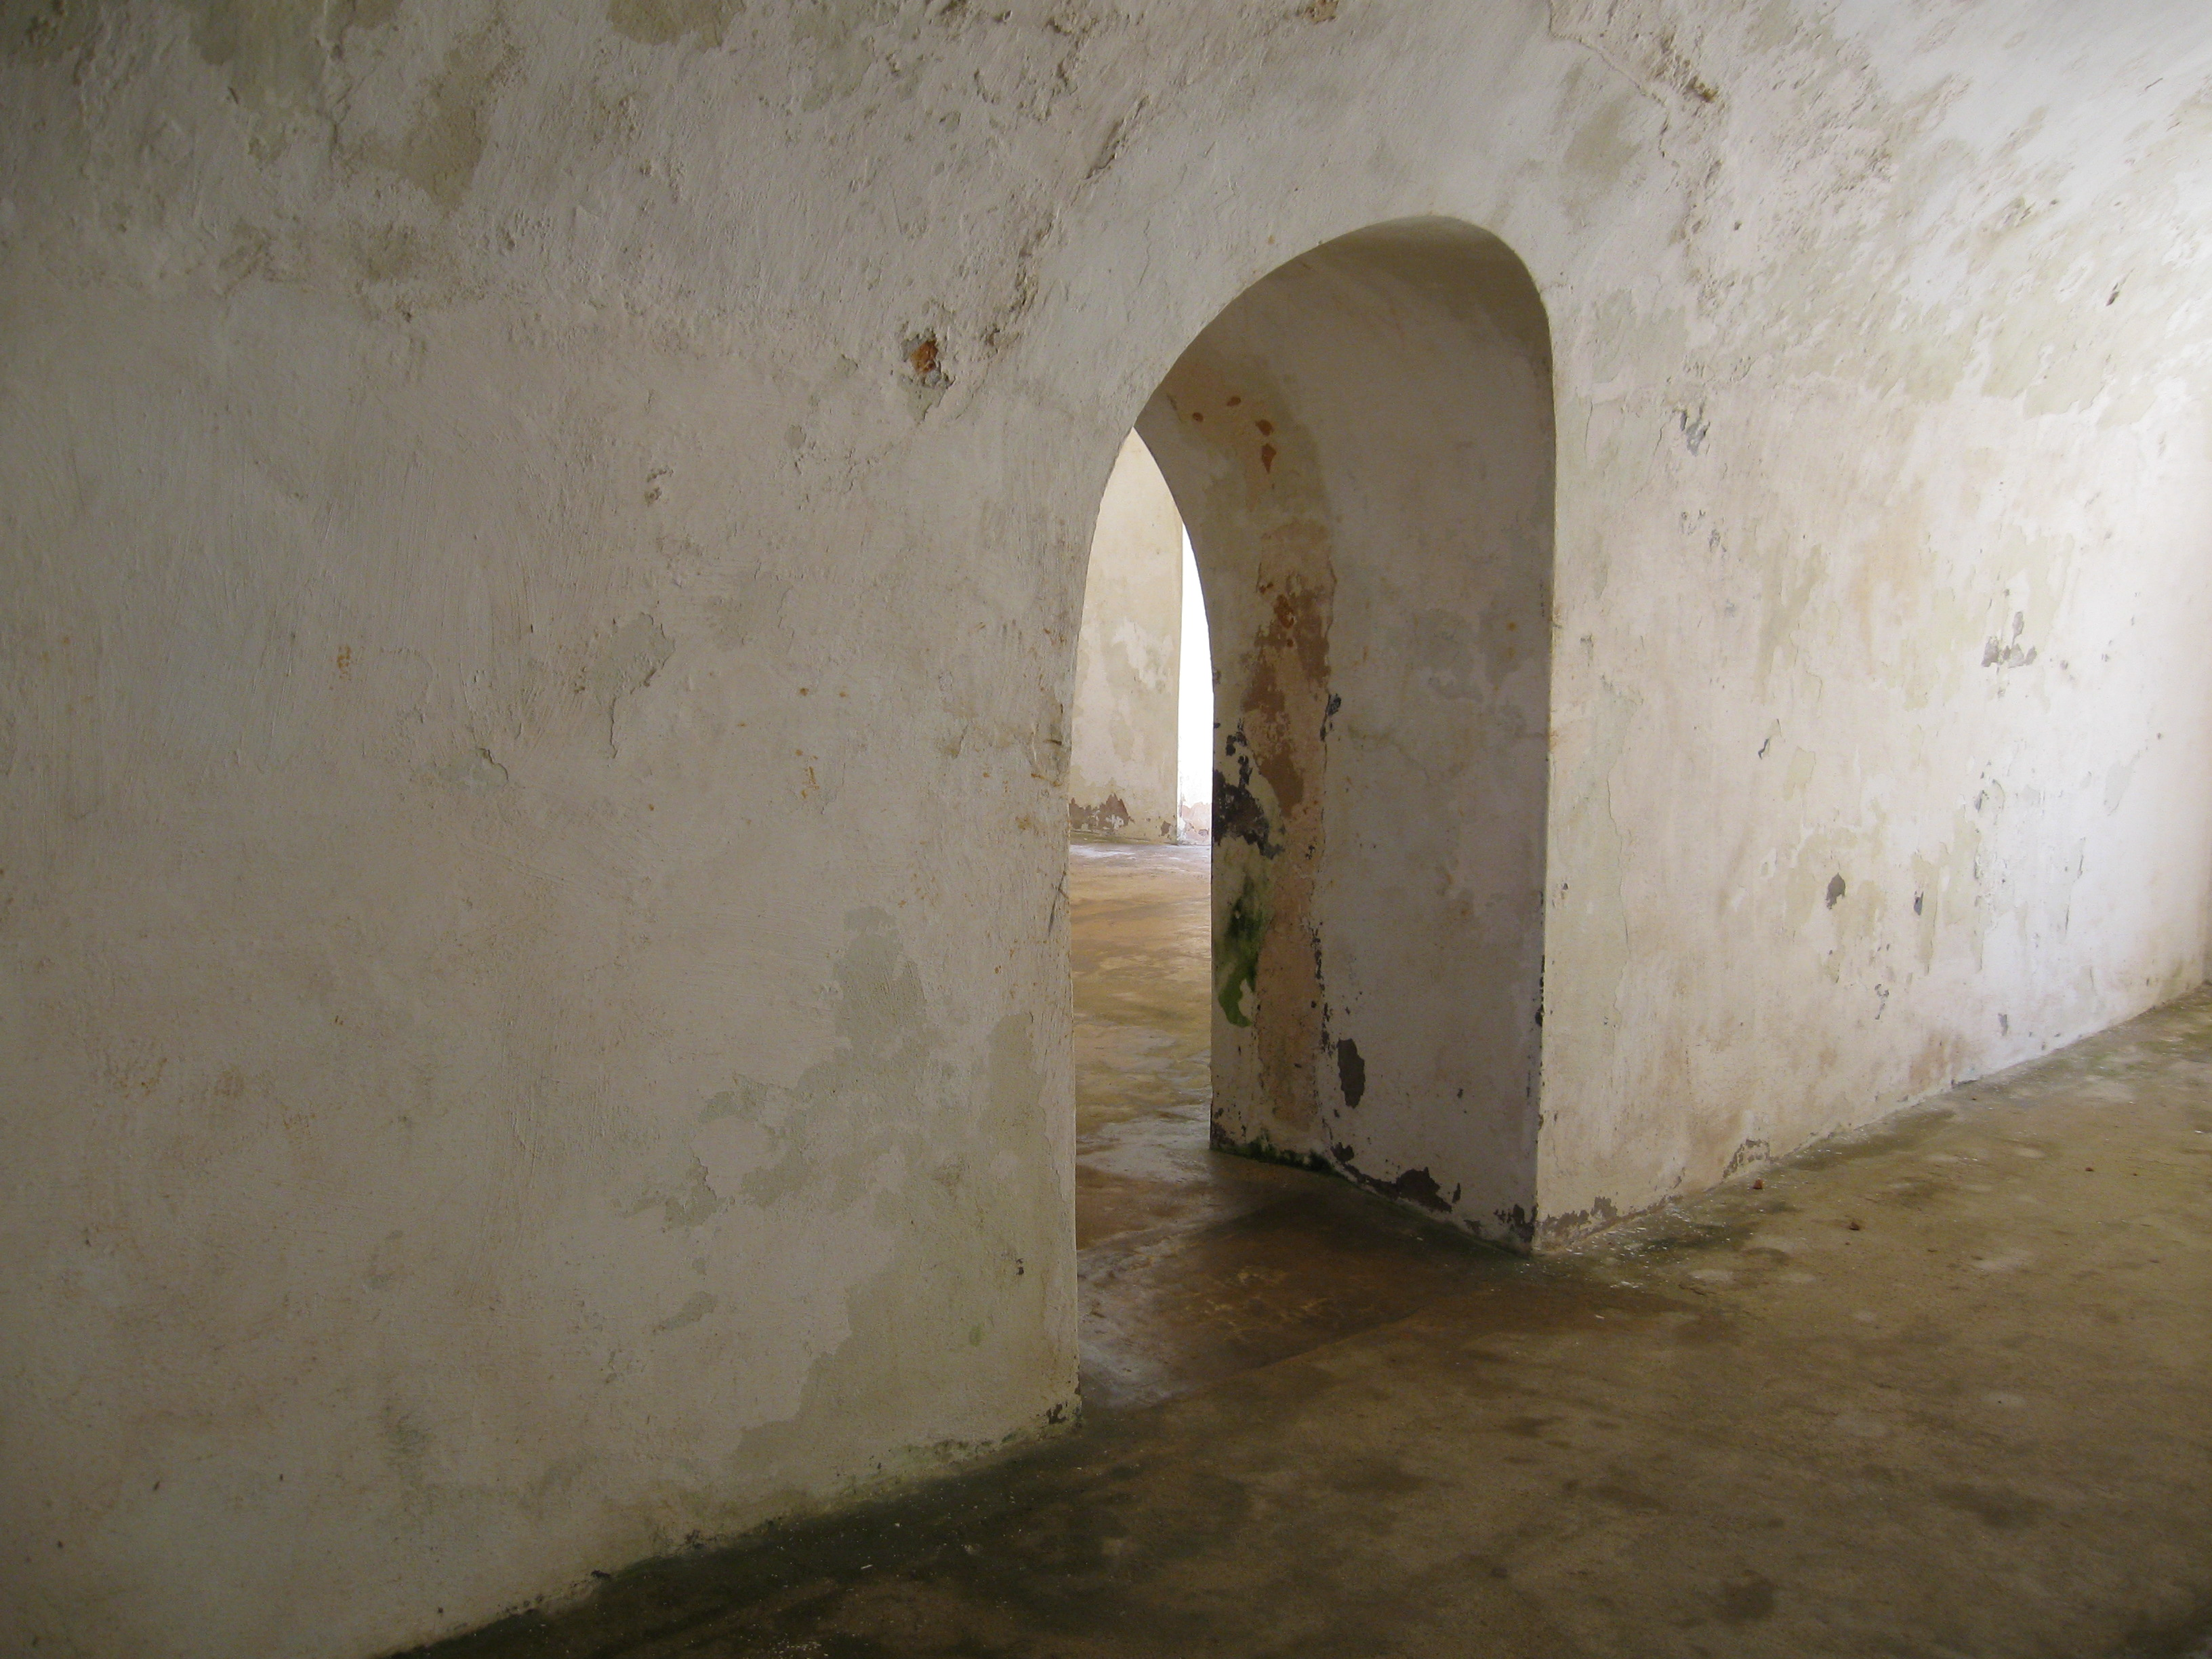 Fort at San Juan, Puerto Rico